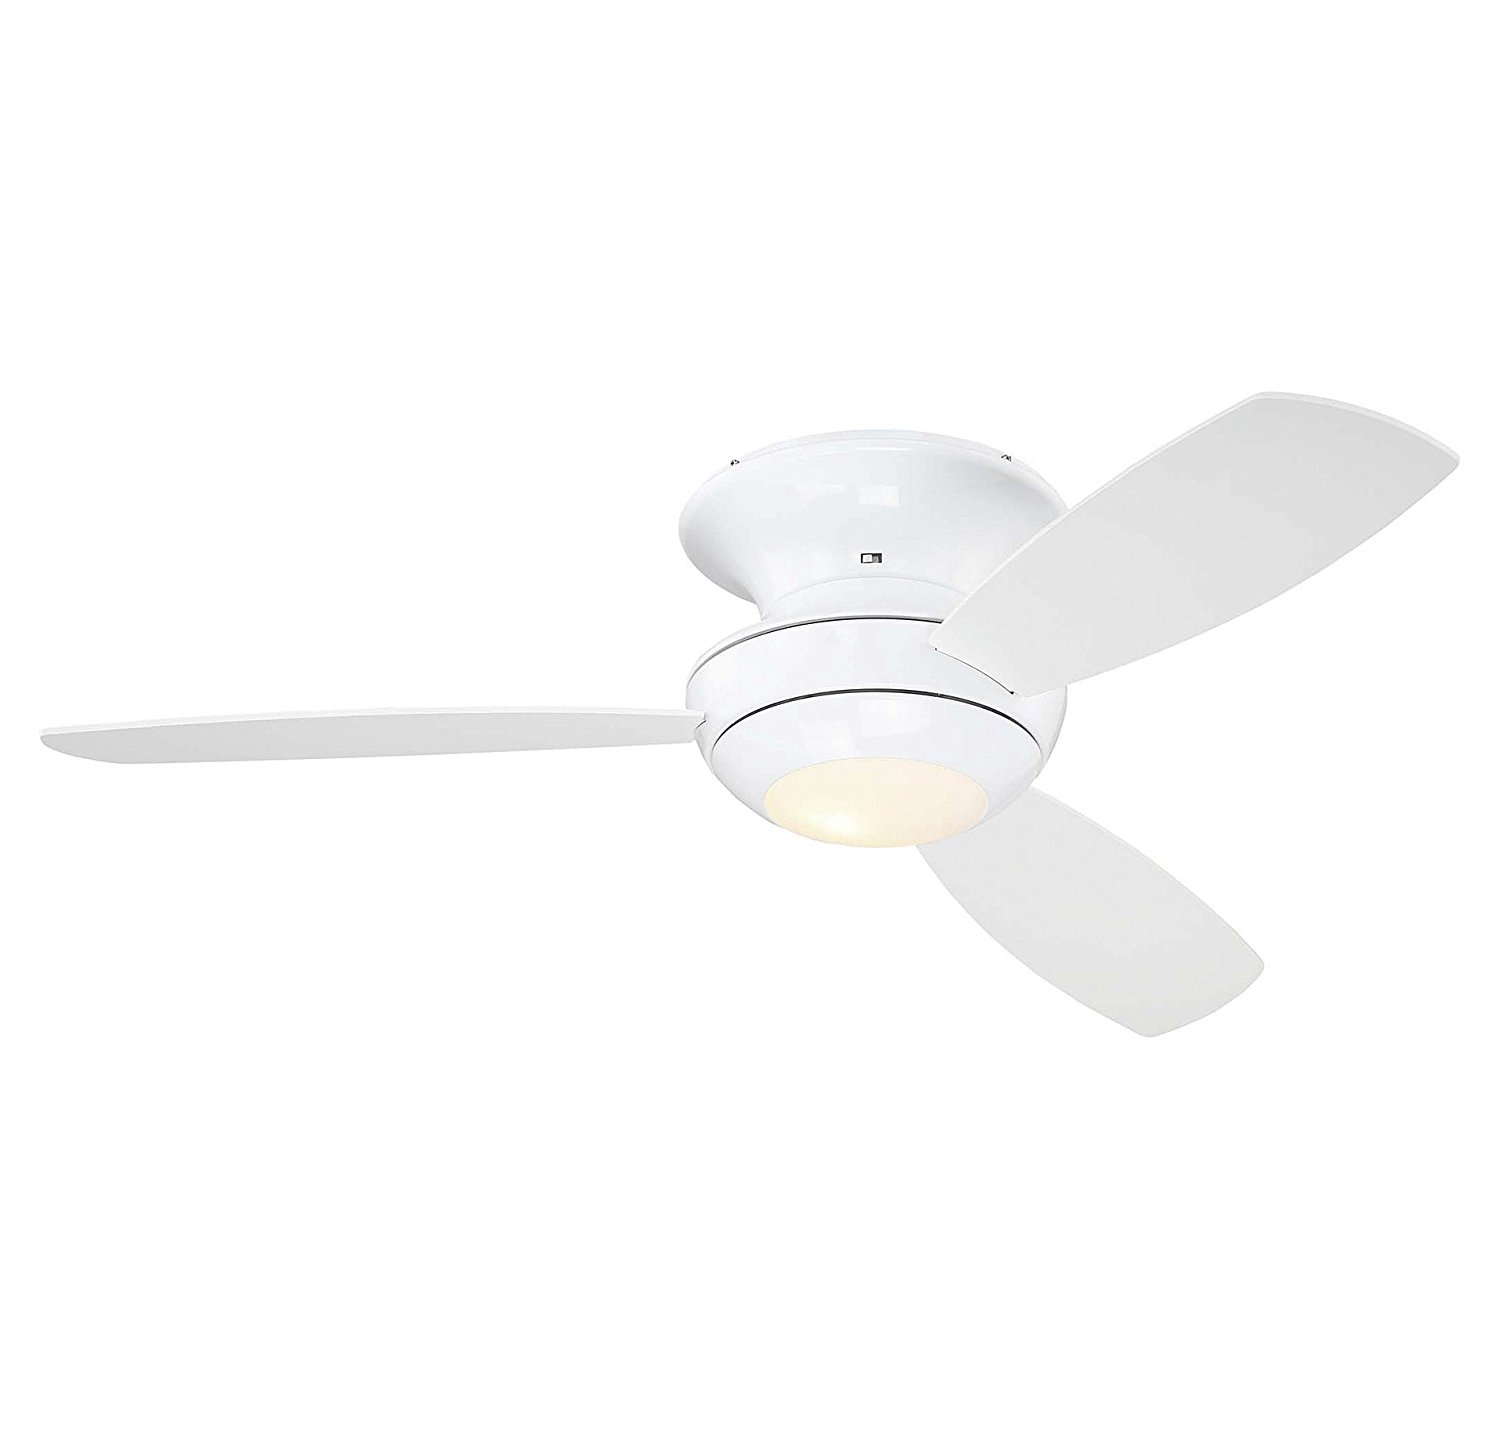 """Trade Winds Lighting TW020330WH Outdoor 52"""" Ceiling Fan w/Light in White"""